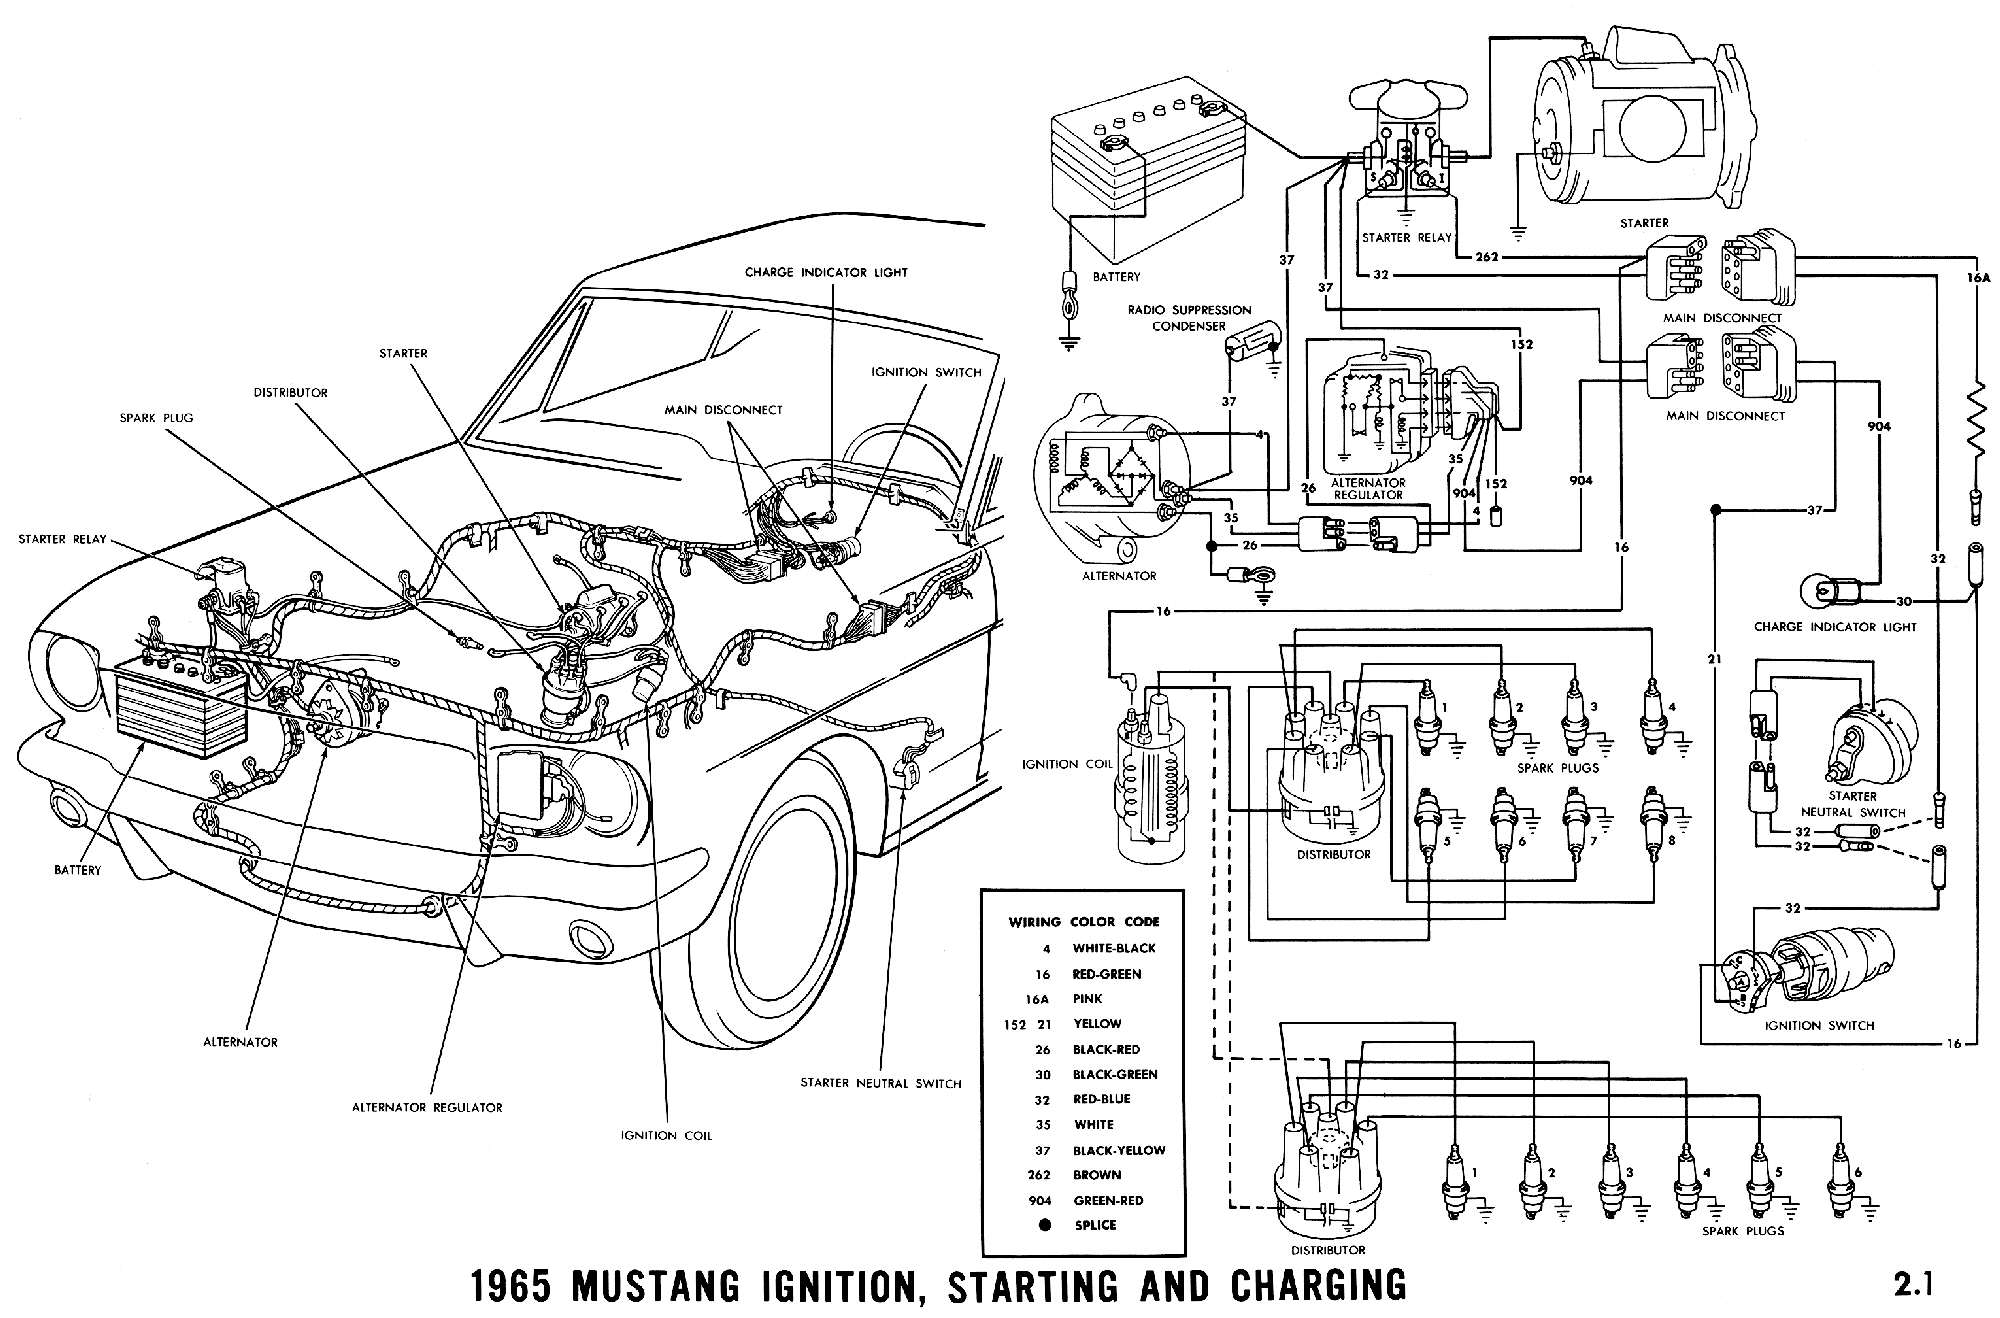 1965c 1965 mustang wiring diagrams average joe restoration 1967 mustang ignition wiring diagram at bayanpartner.co